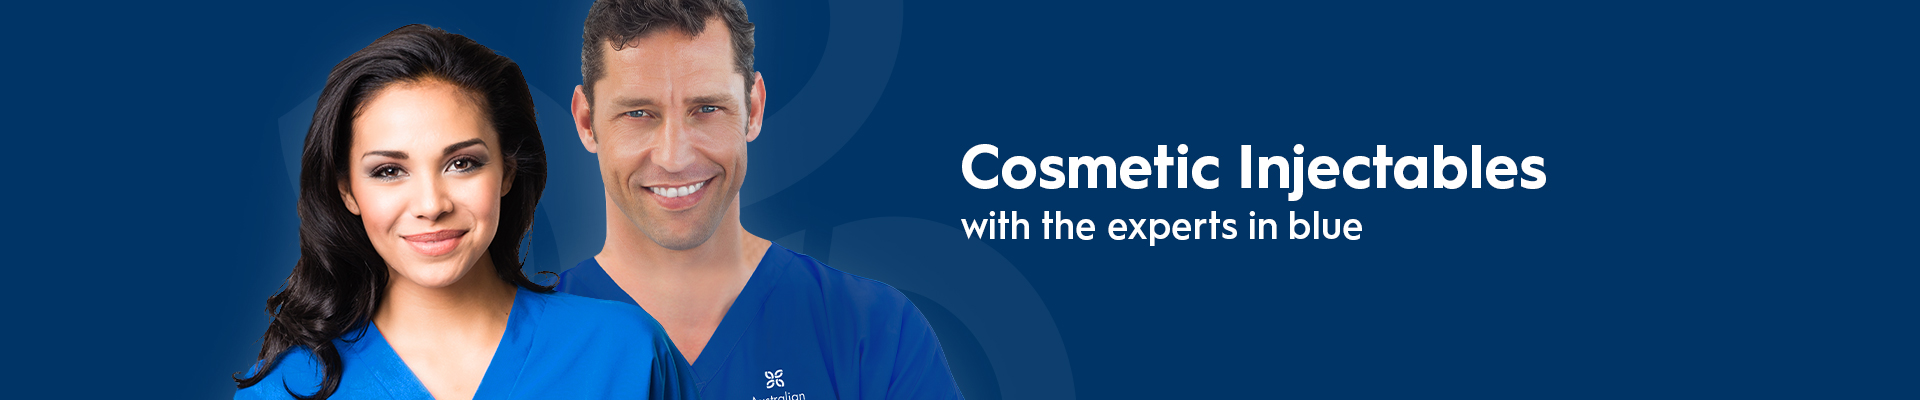 Cosmetic Injectables at Australian Skin Clinics